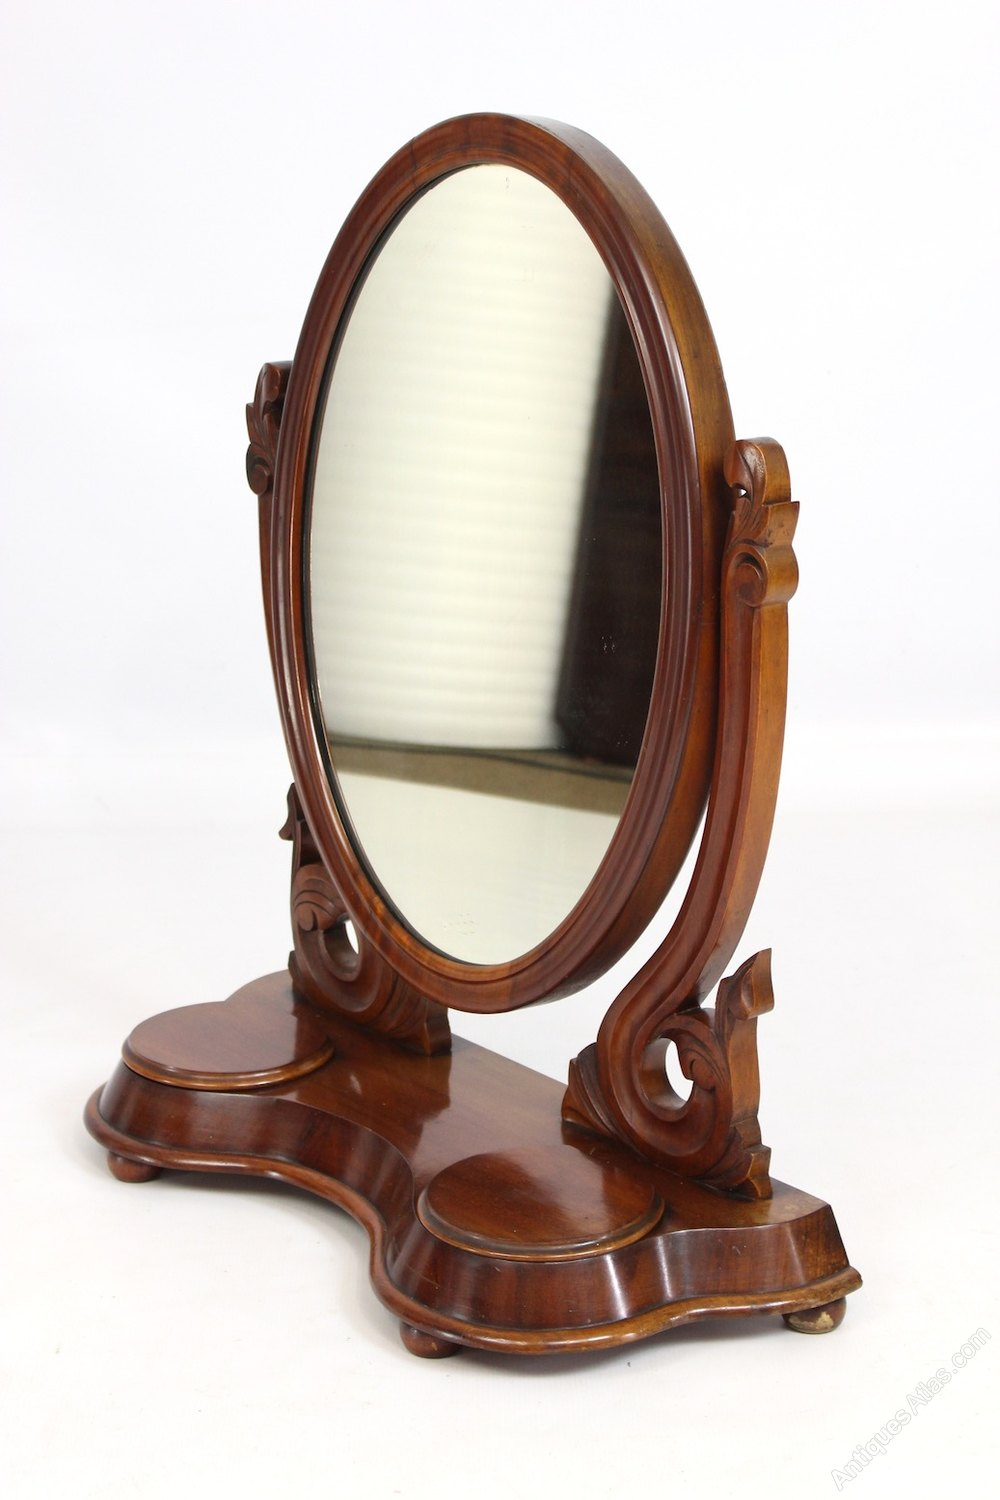 Antiques atlas victorian mahogany oval dressing table mirror for Victorian mirror